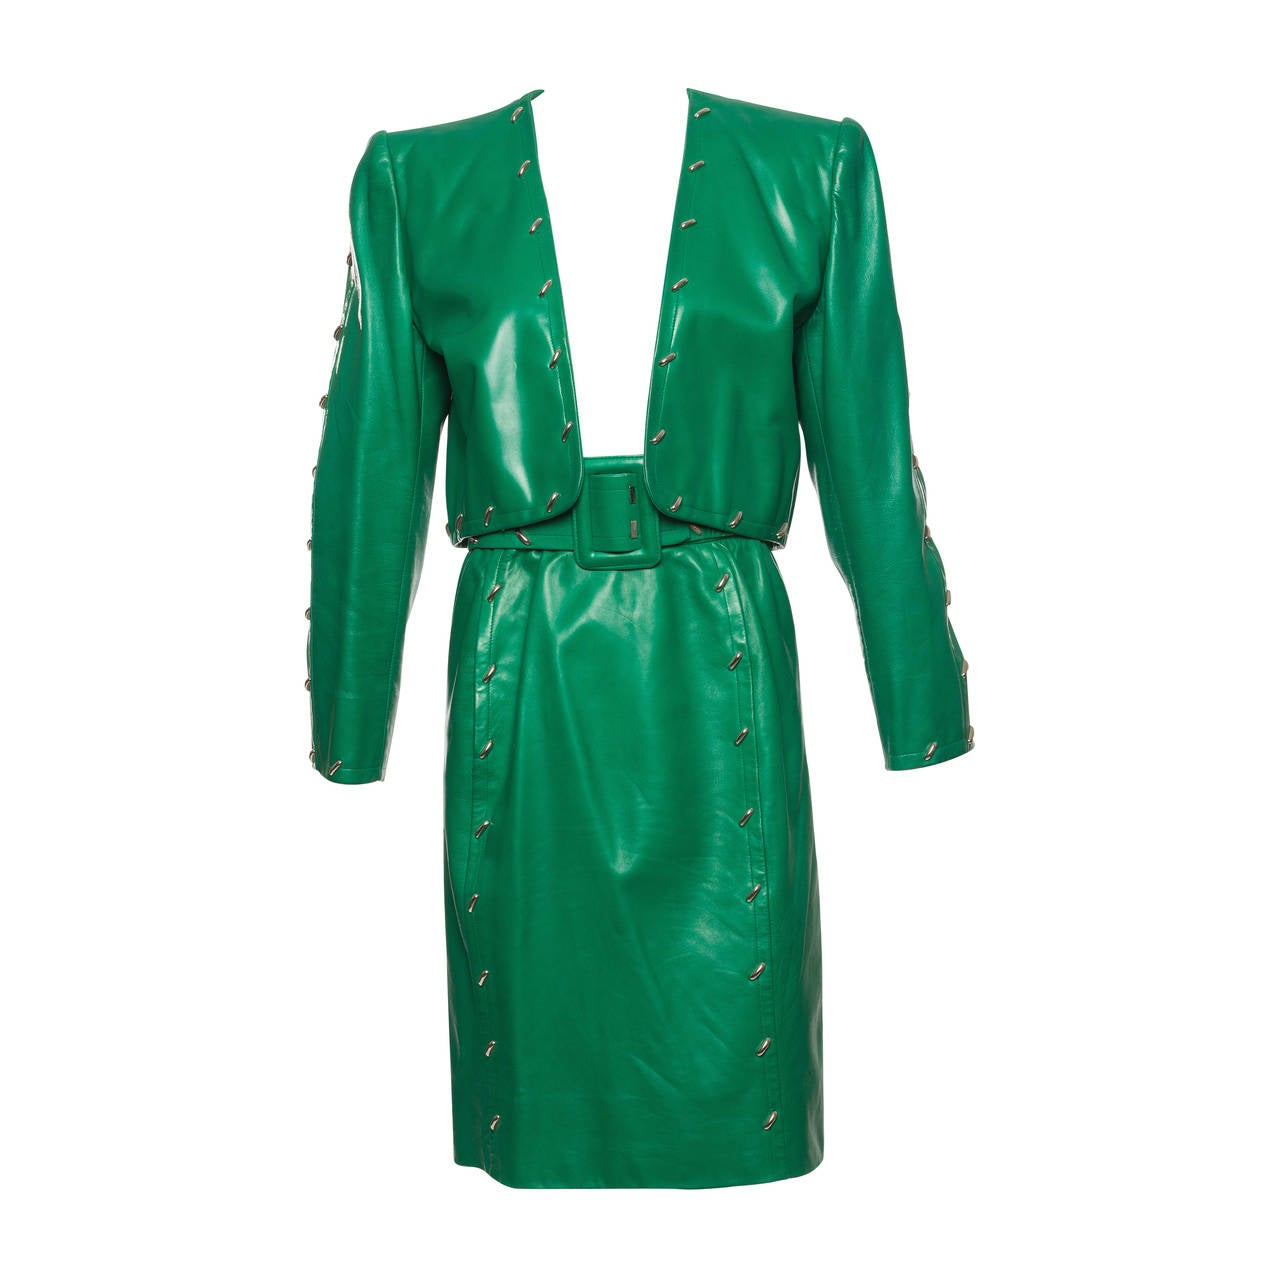 Givenchy Couture Green Leather Studded Skirt Suit, Circa 1980s